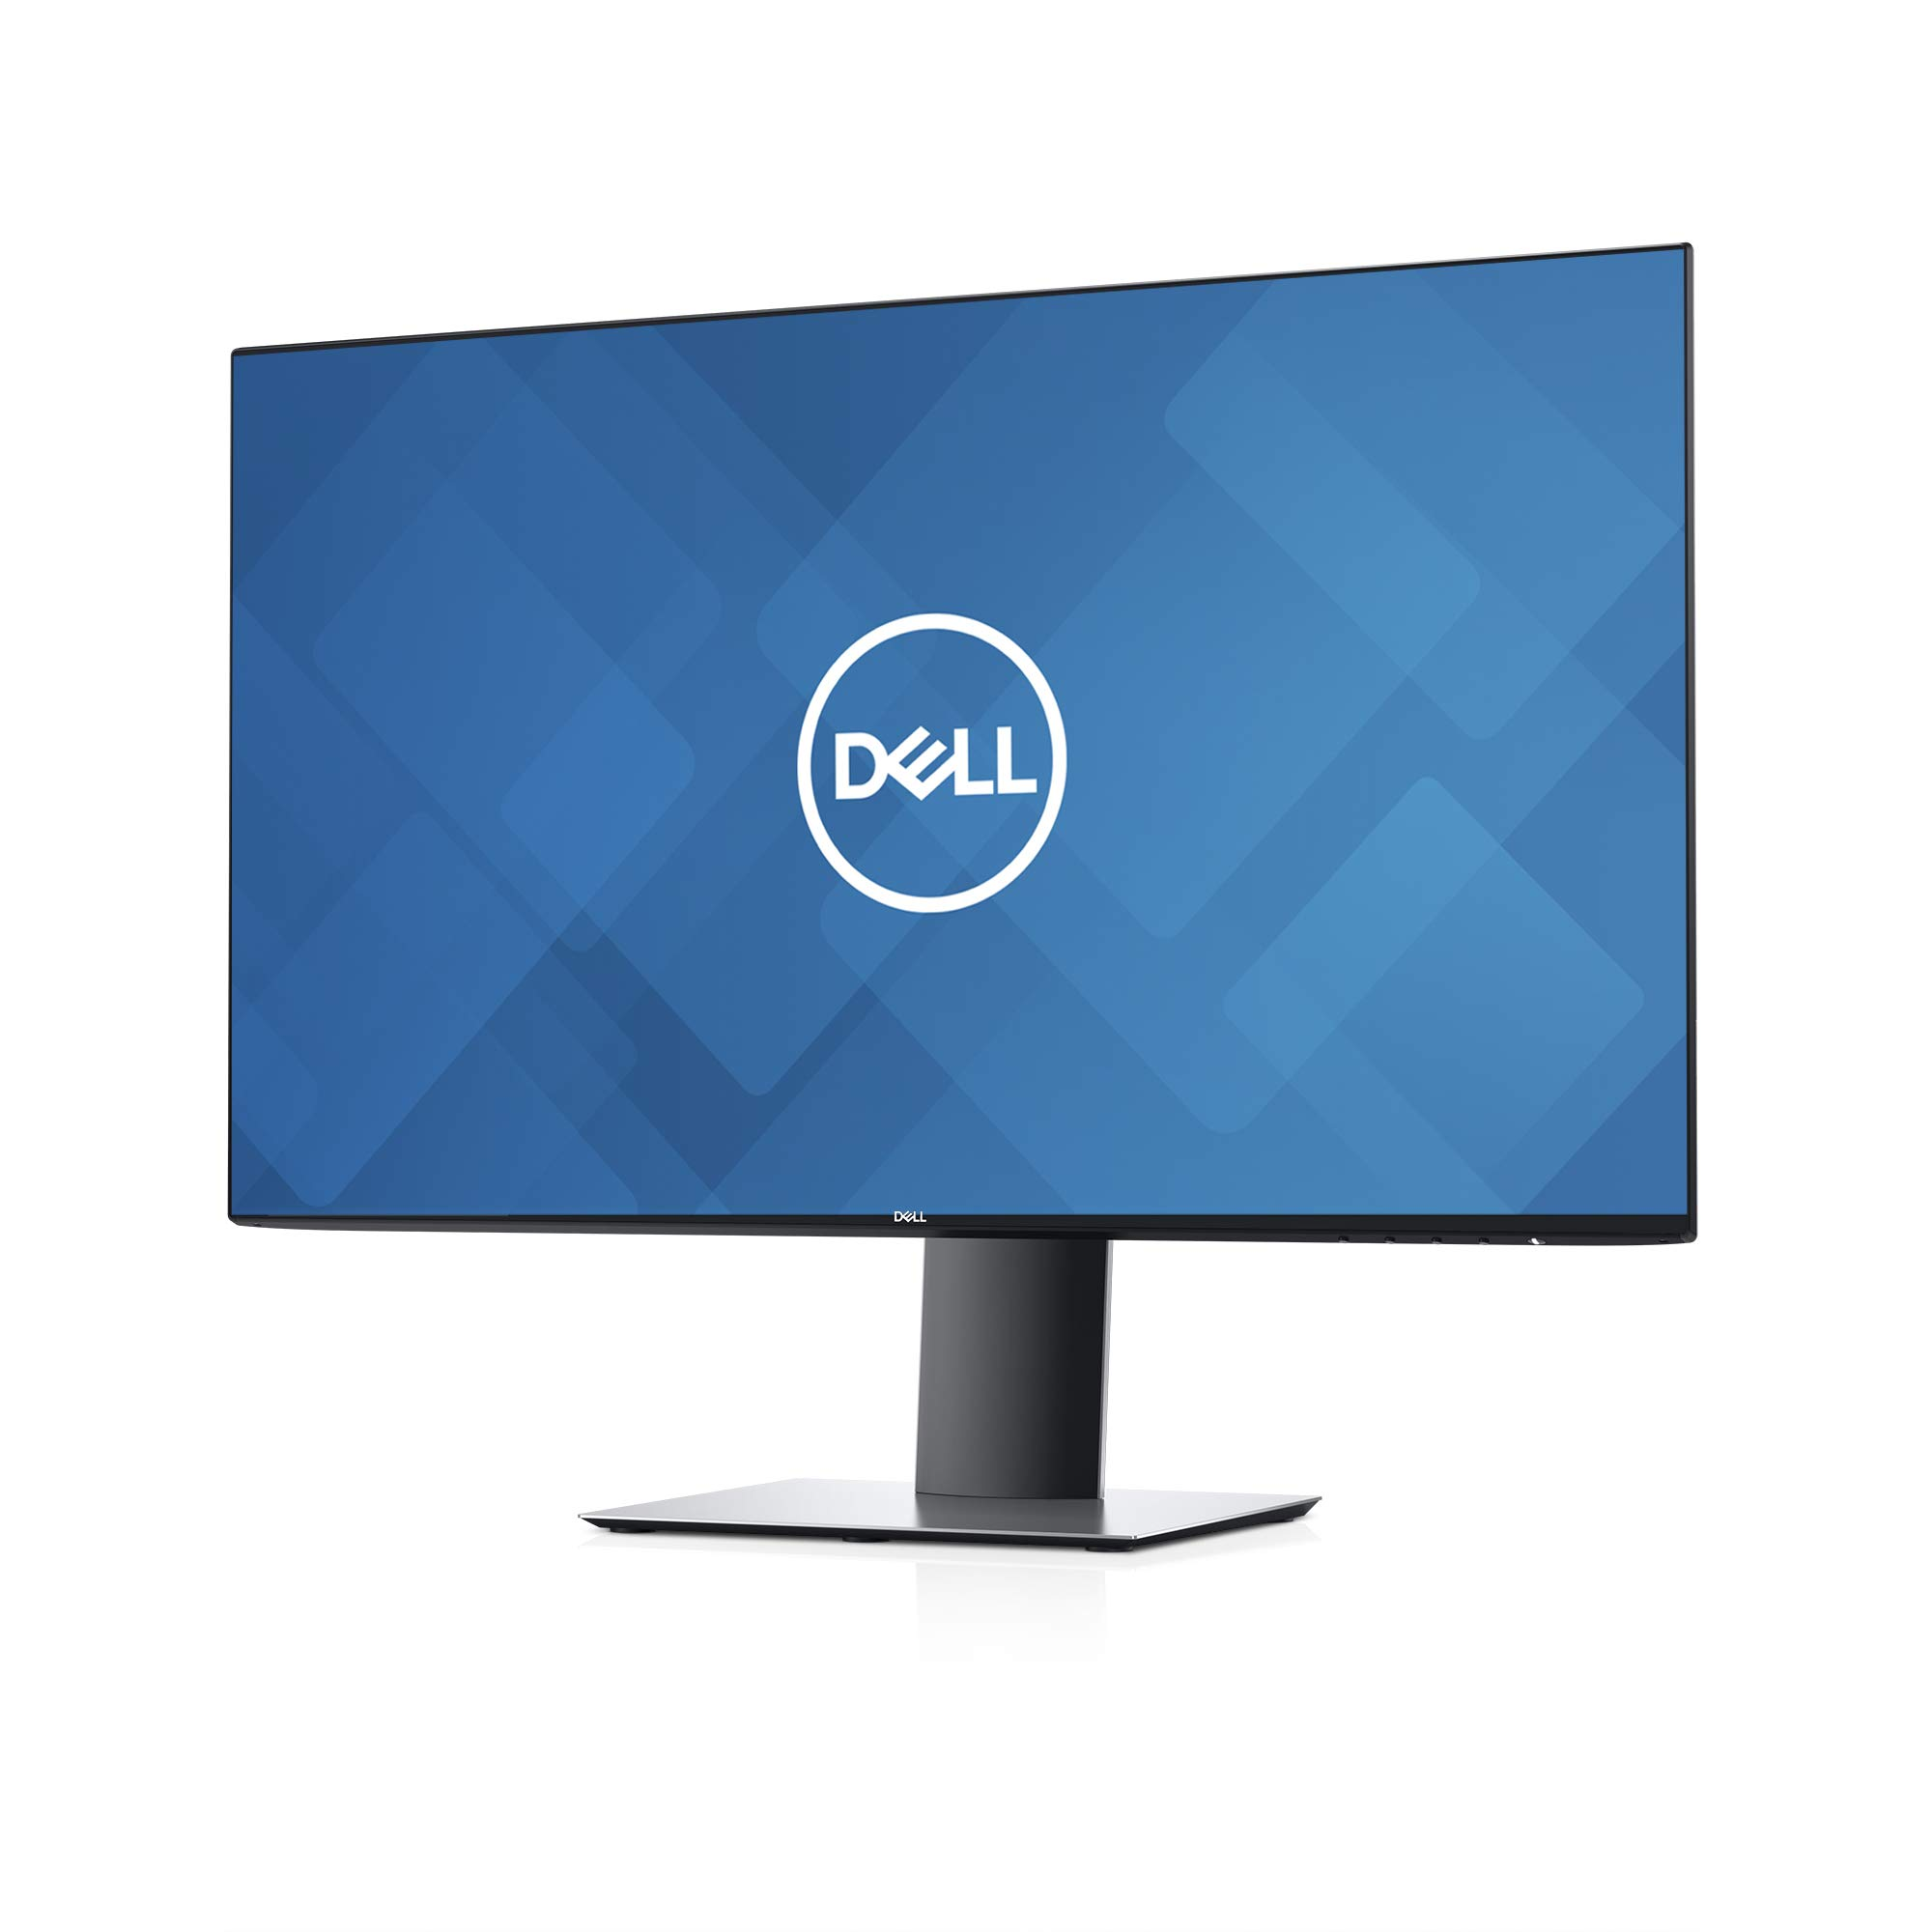 Dell Ultrasharp U2719DX 27-Inch WQHD 2560x1440 Resolution IPS Monitor with Infinity Edge Bezels by Dell (Image #5)